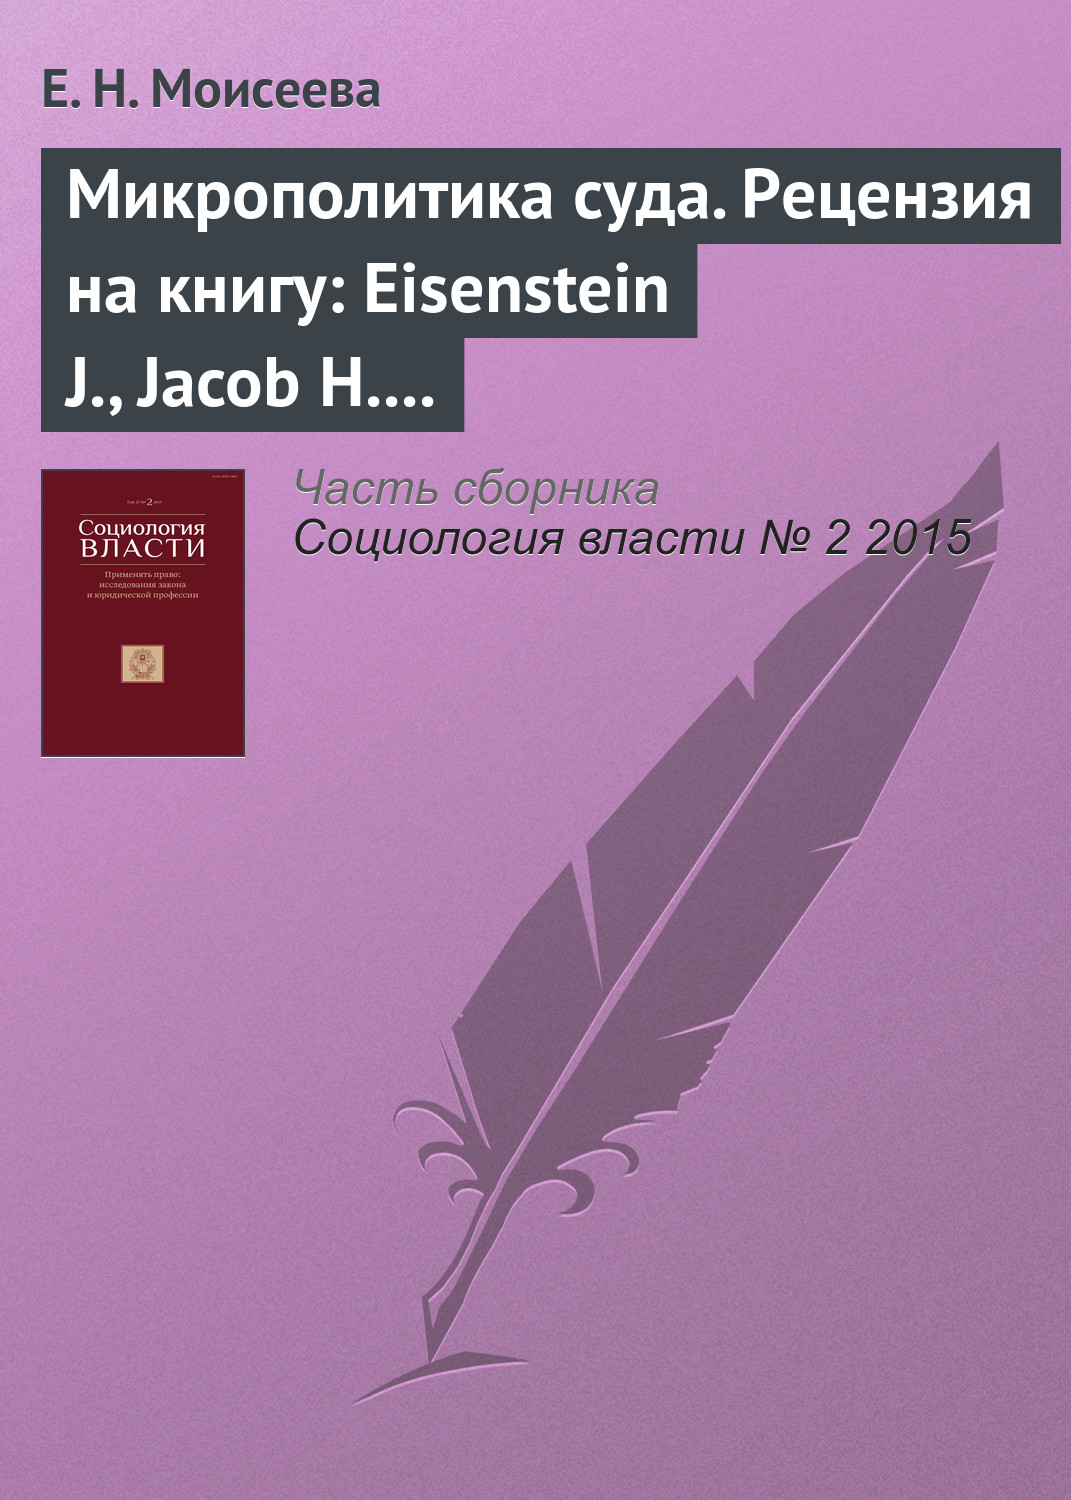 Е. Н. Моисеева Микрополитика суда. Рецензия на книгу: Eisenstein J., Jacob H. Felony Justice: An Organizational Analysis of Criminal Court. Boston, Toronto: Little, Brownand Company, 1977 dental equipment